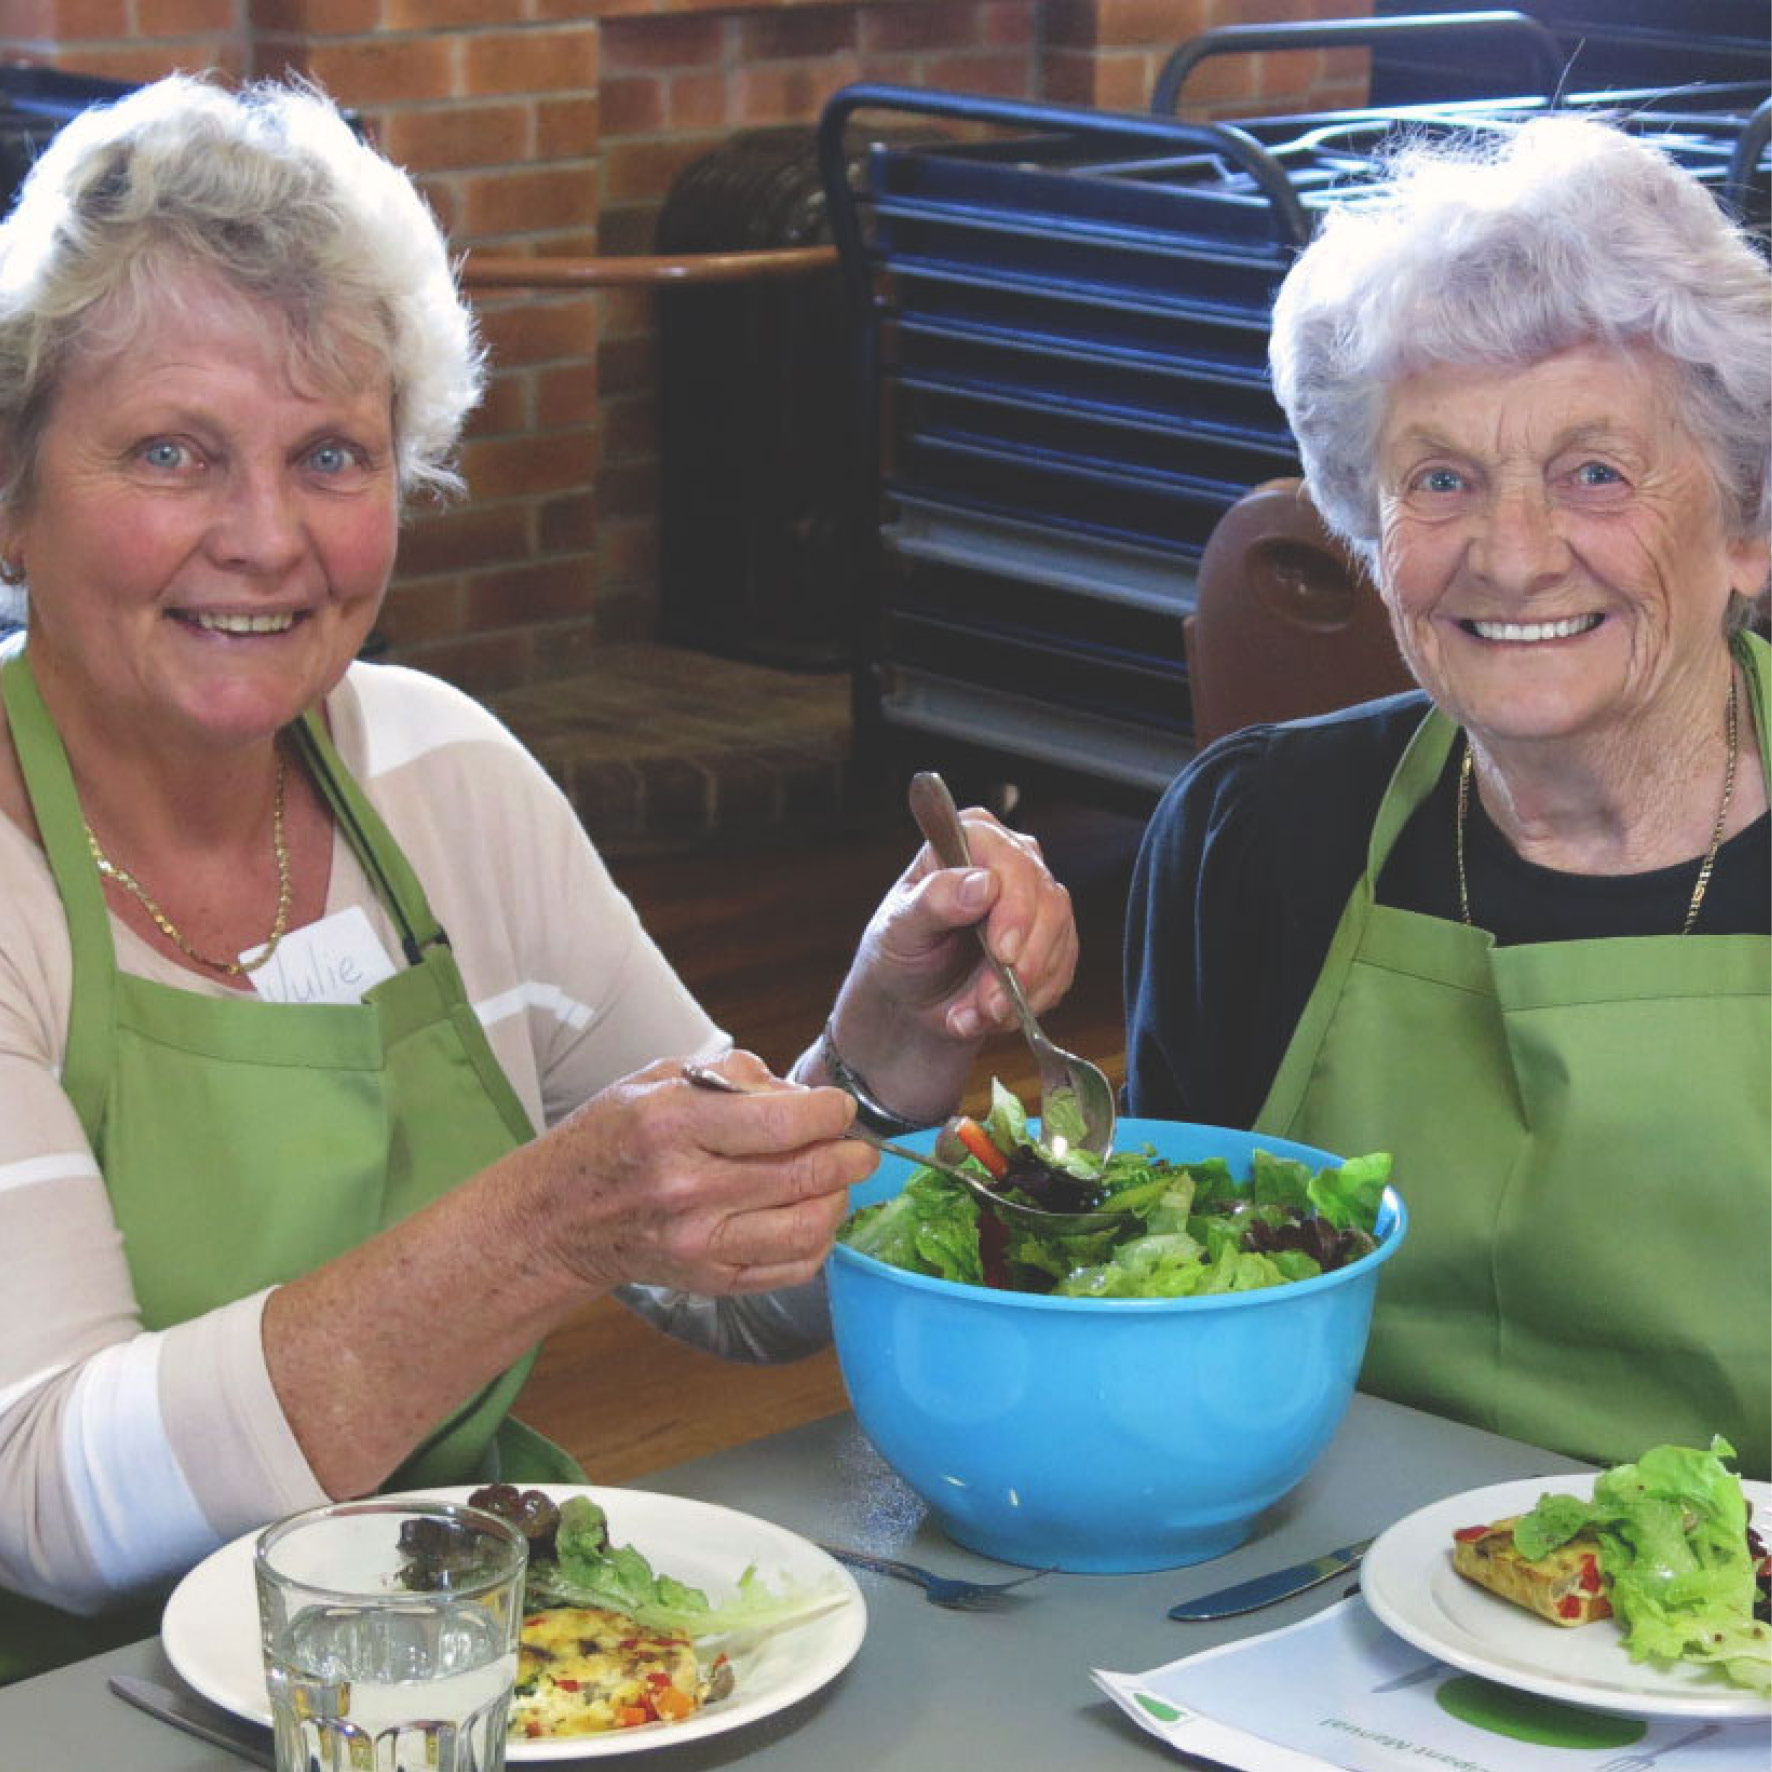 Two ladies mixing up a bowl of salad